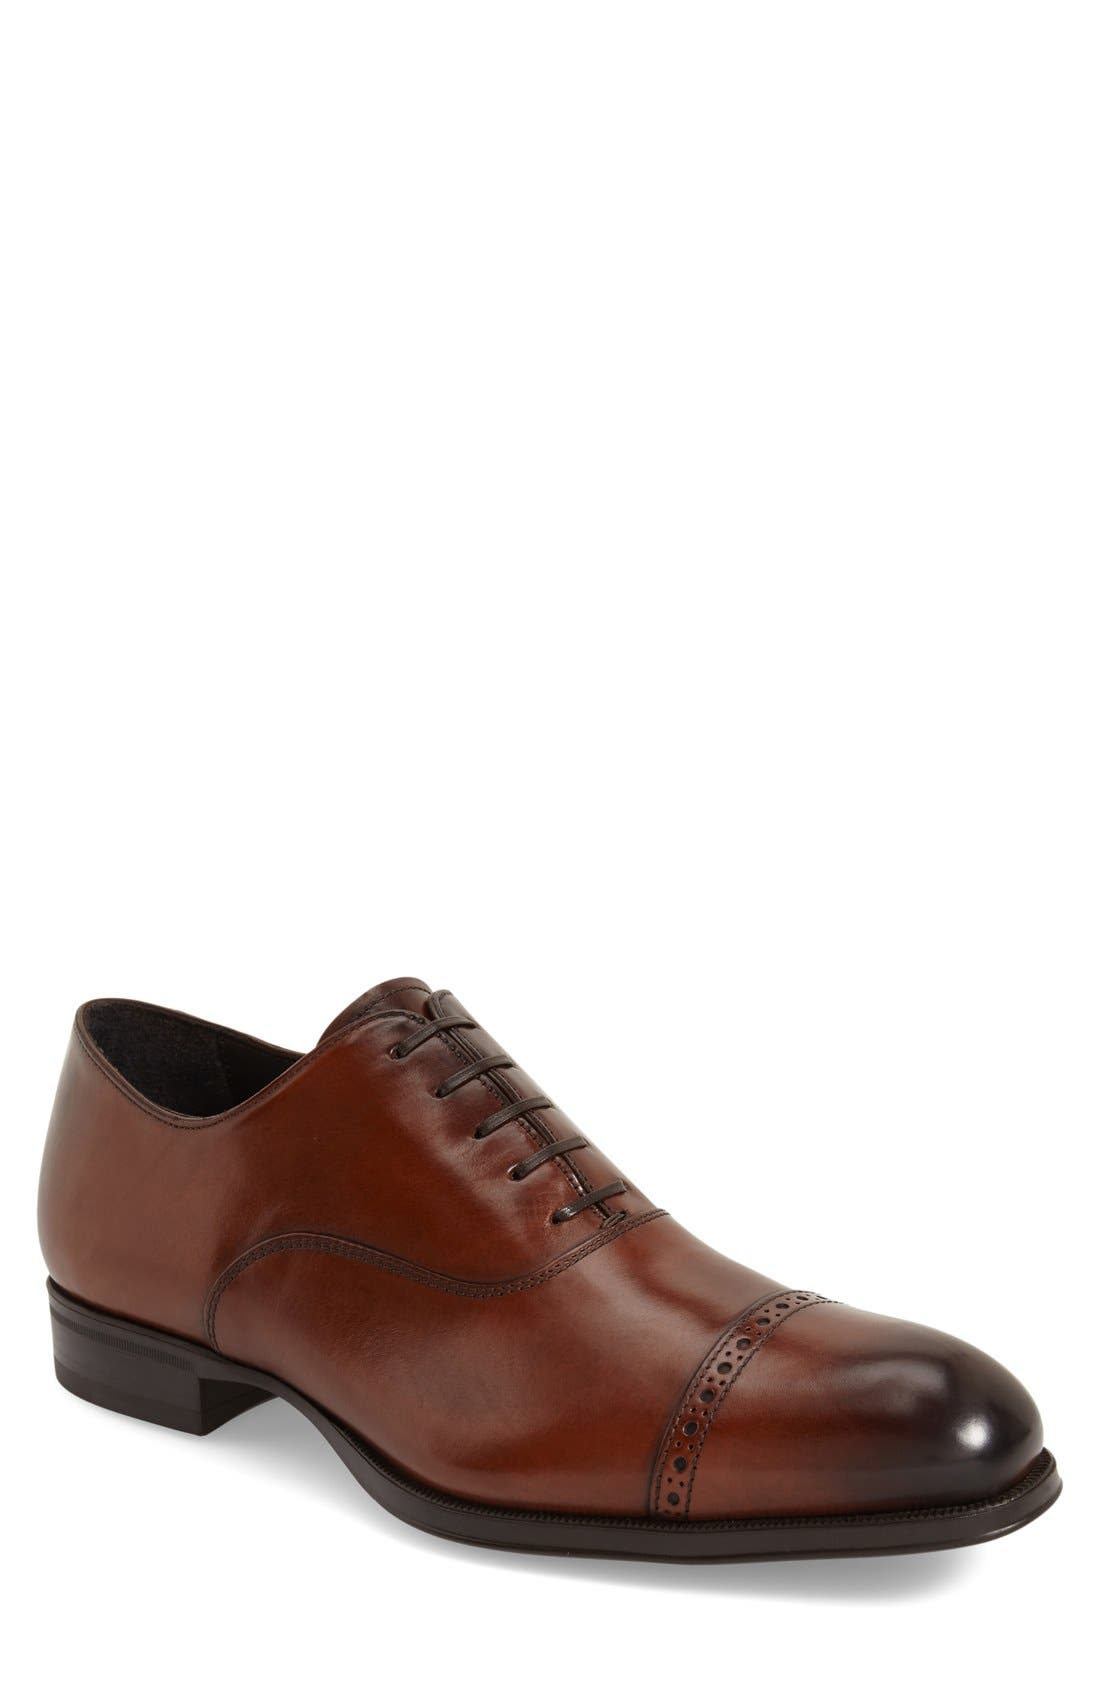 'Derek' Cap Toe Oxford,                         Main,                         color, Tan